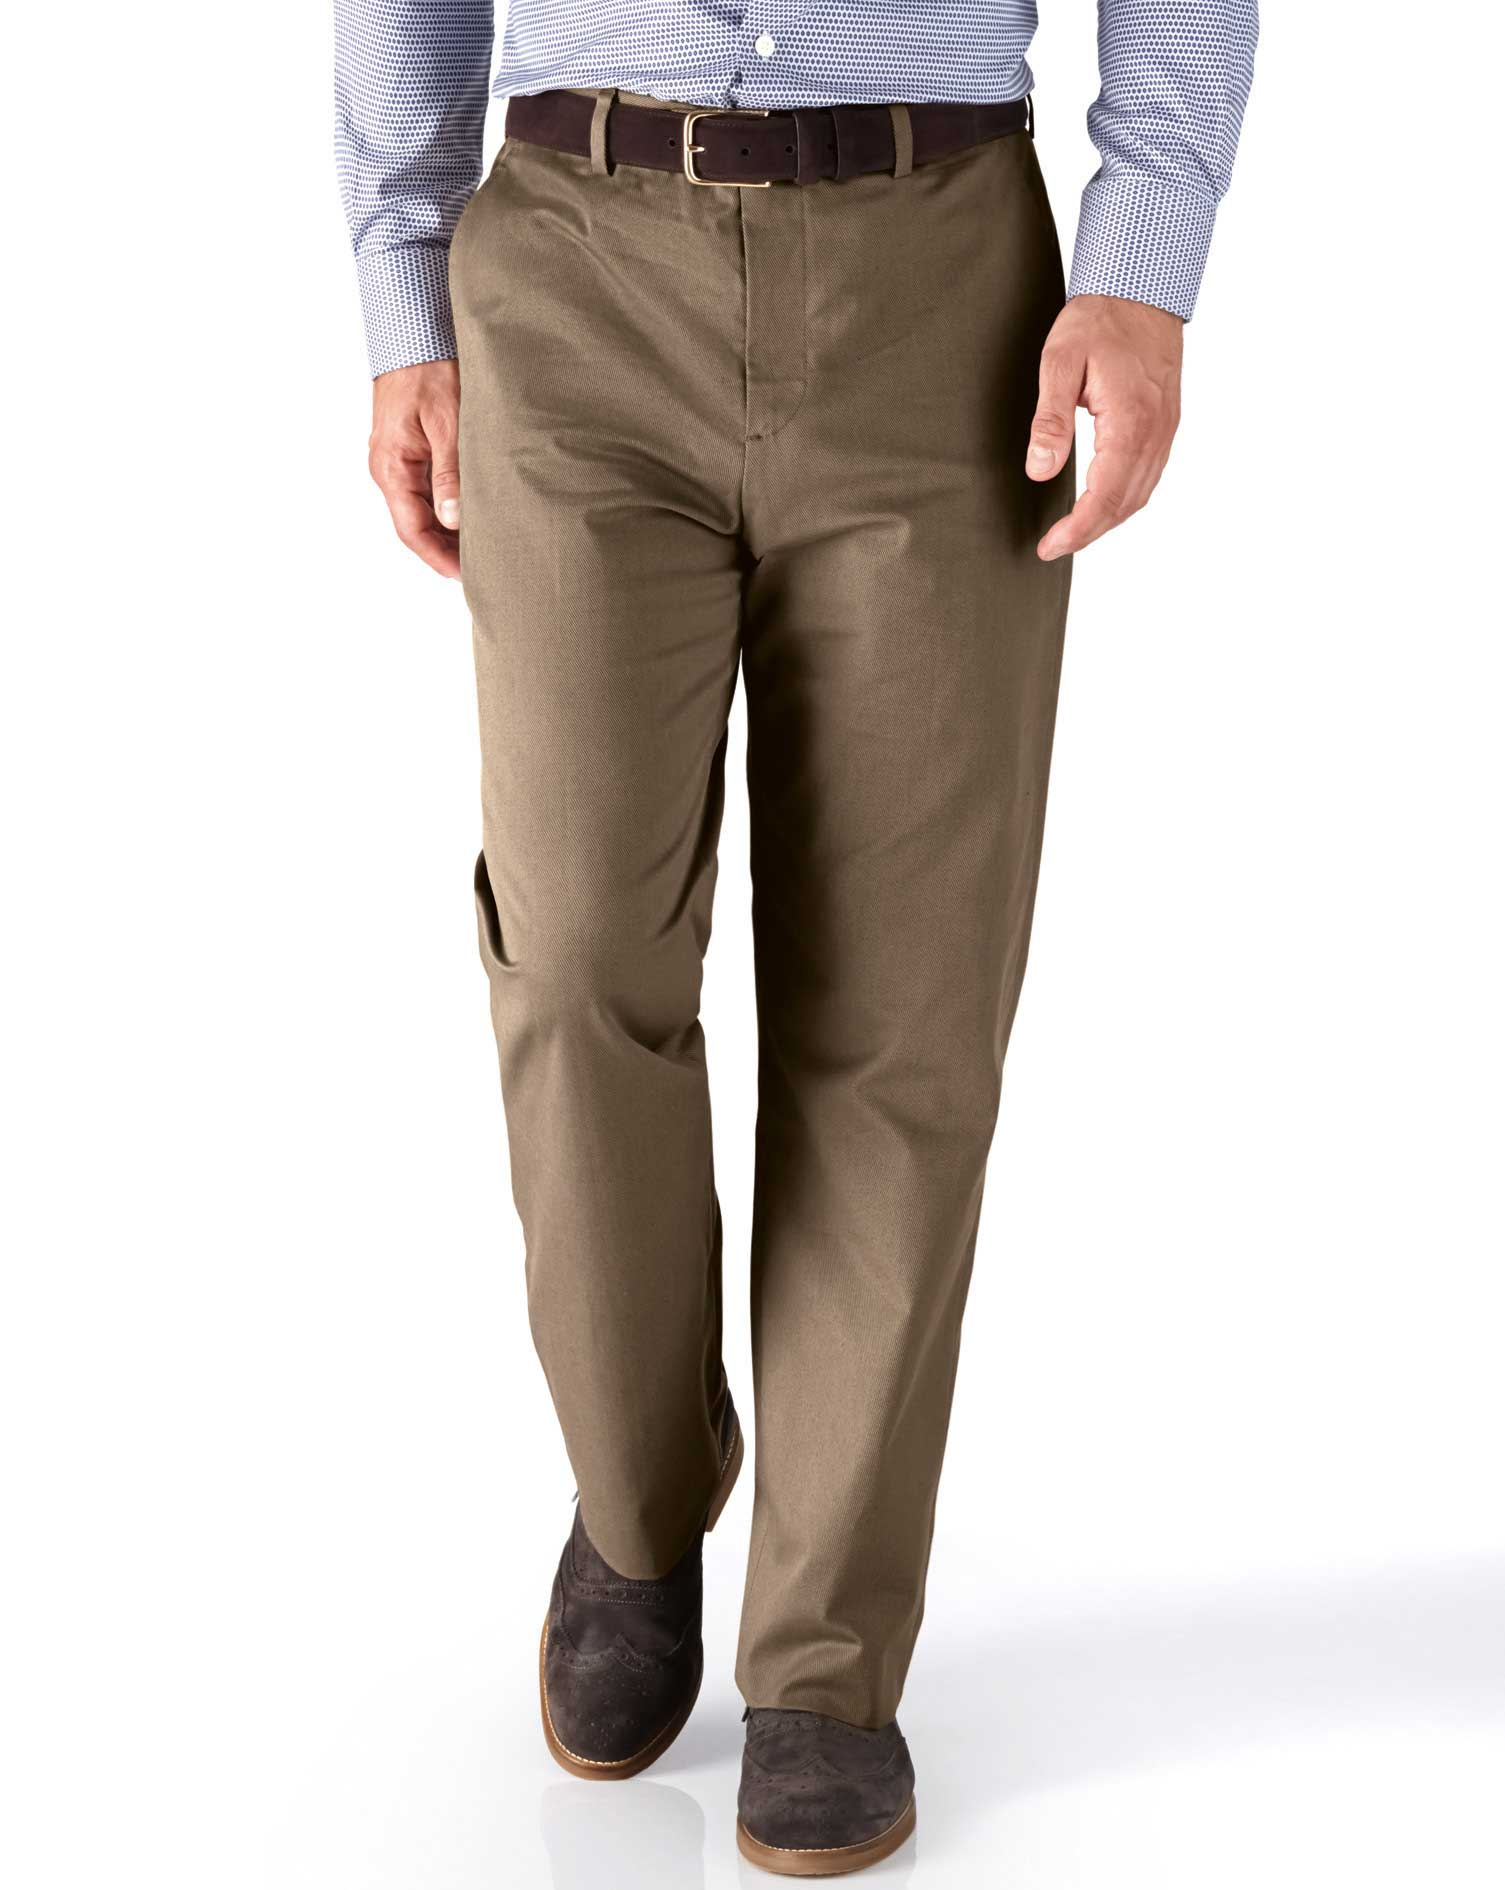 Tan Classic Fit Stretch Cavalry Twill Trousers Size W38 L34 by Charles Tyrwhitt